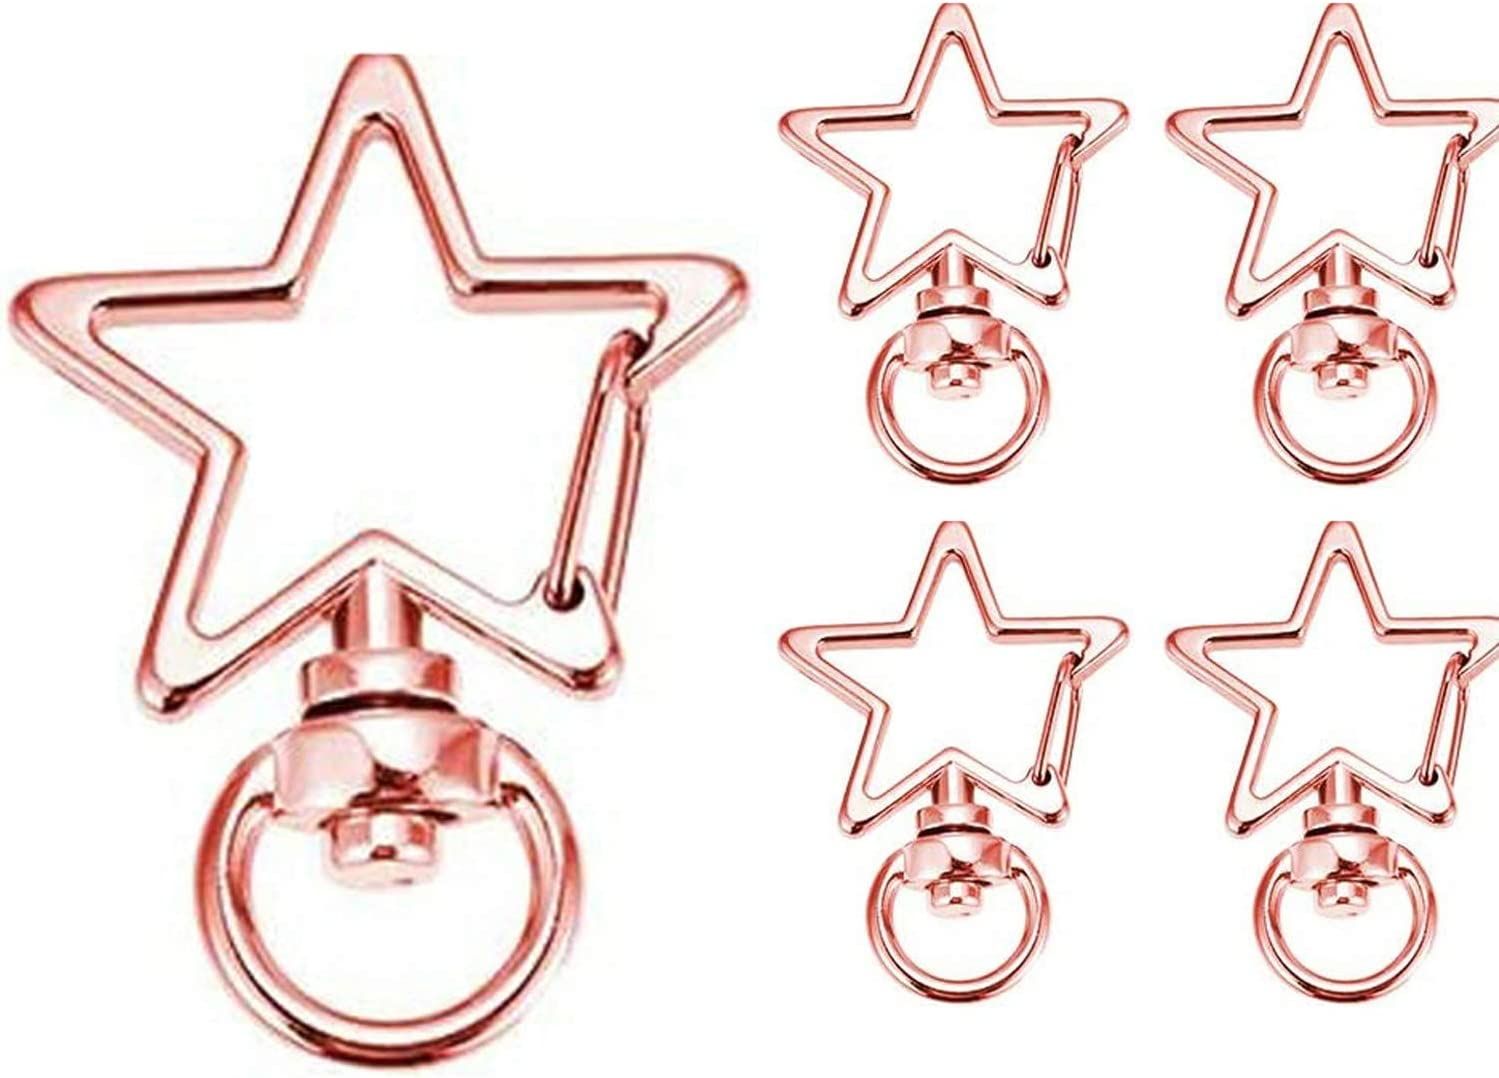 //Silver Heart Shape+Ring 50 pc- Nanum 50//100-Pcs Metal Swivel Lobster Clasp Snap Hook Star Shape with Key Rings,Suieable for Make Keychain Pendants,Luggage Pendants and Other Accessories